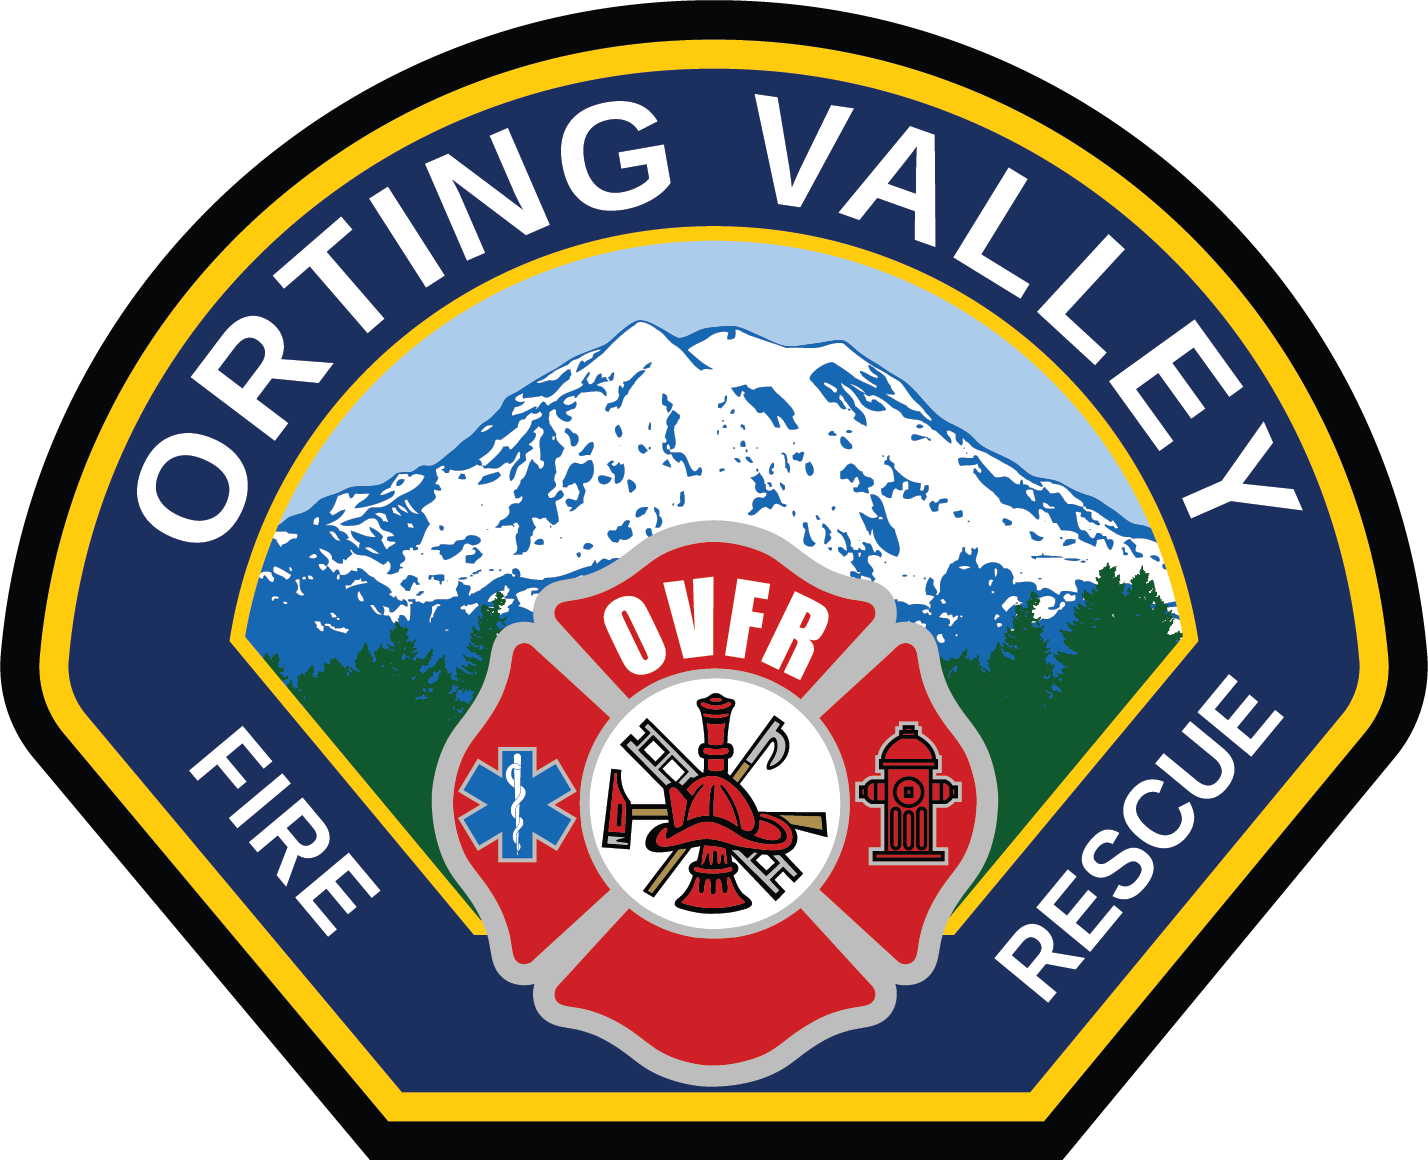 Orting Valley Fire & Rescue